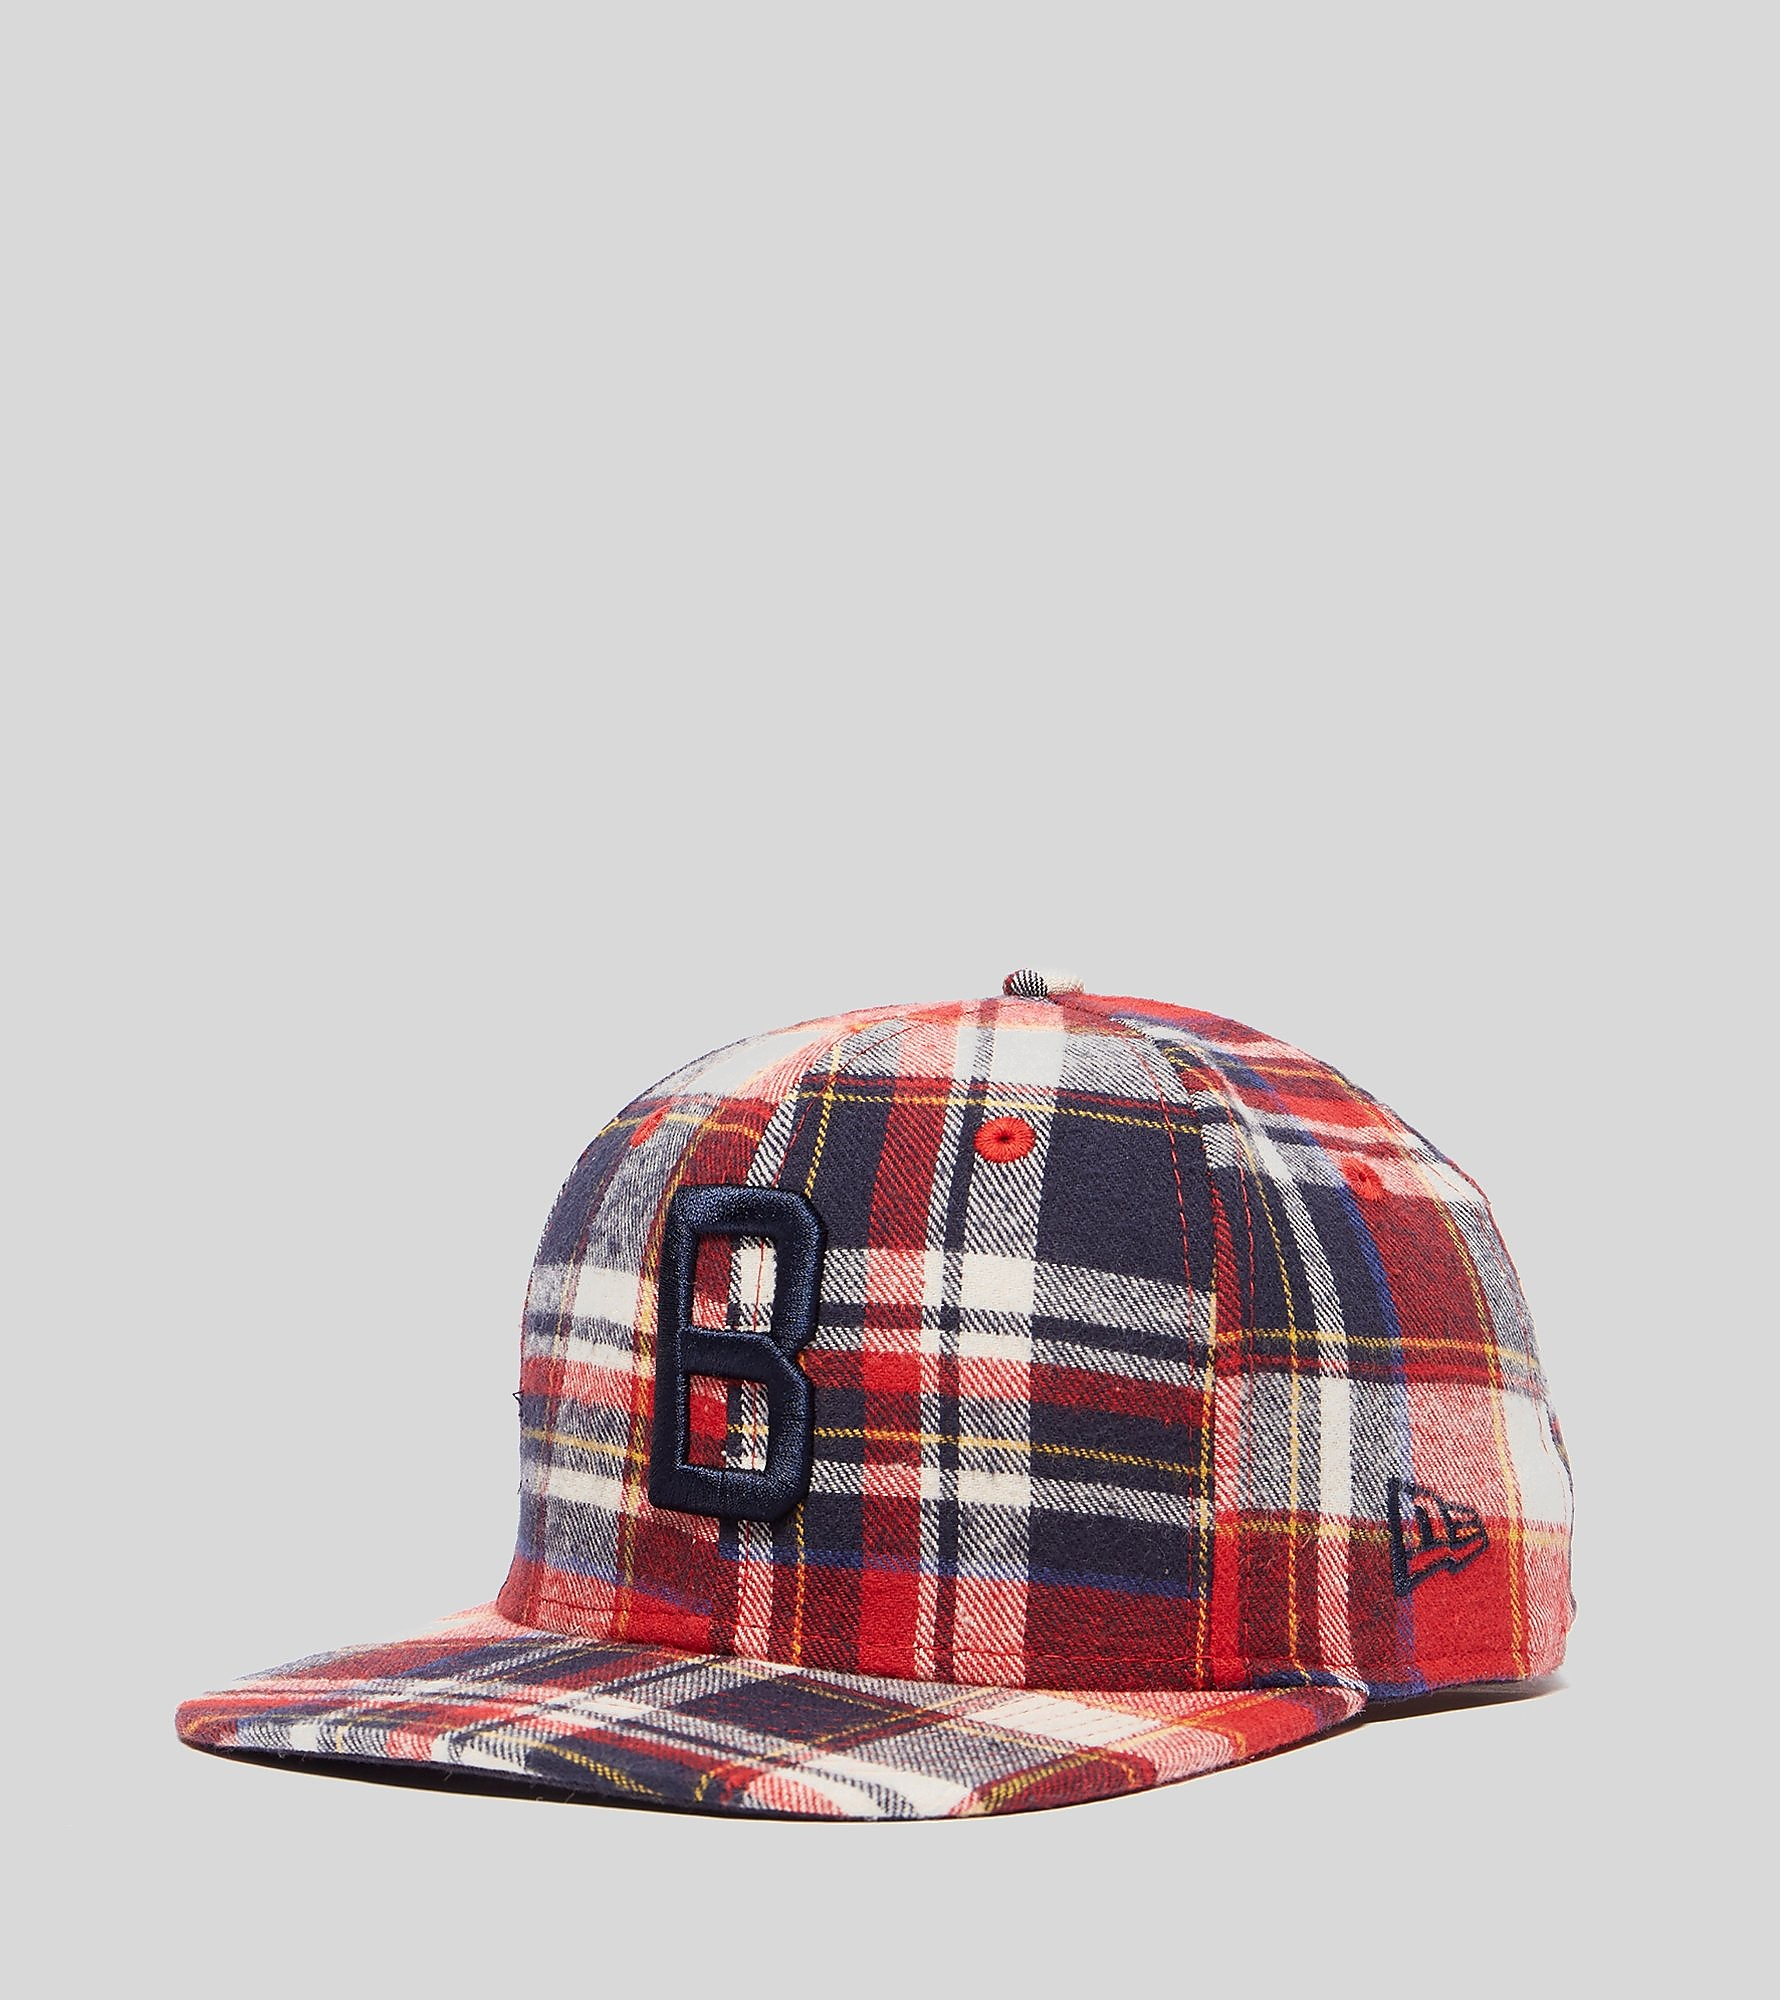 New Era 9FIFTY Plaid Brooklyn Dodgers Cap